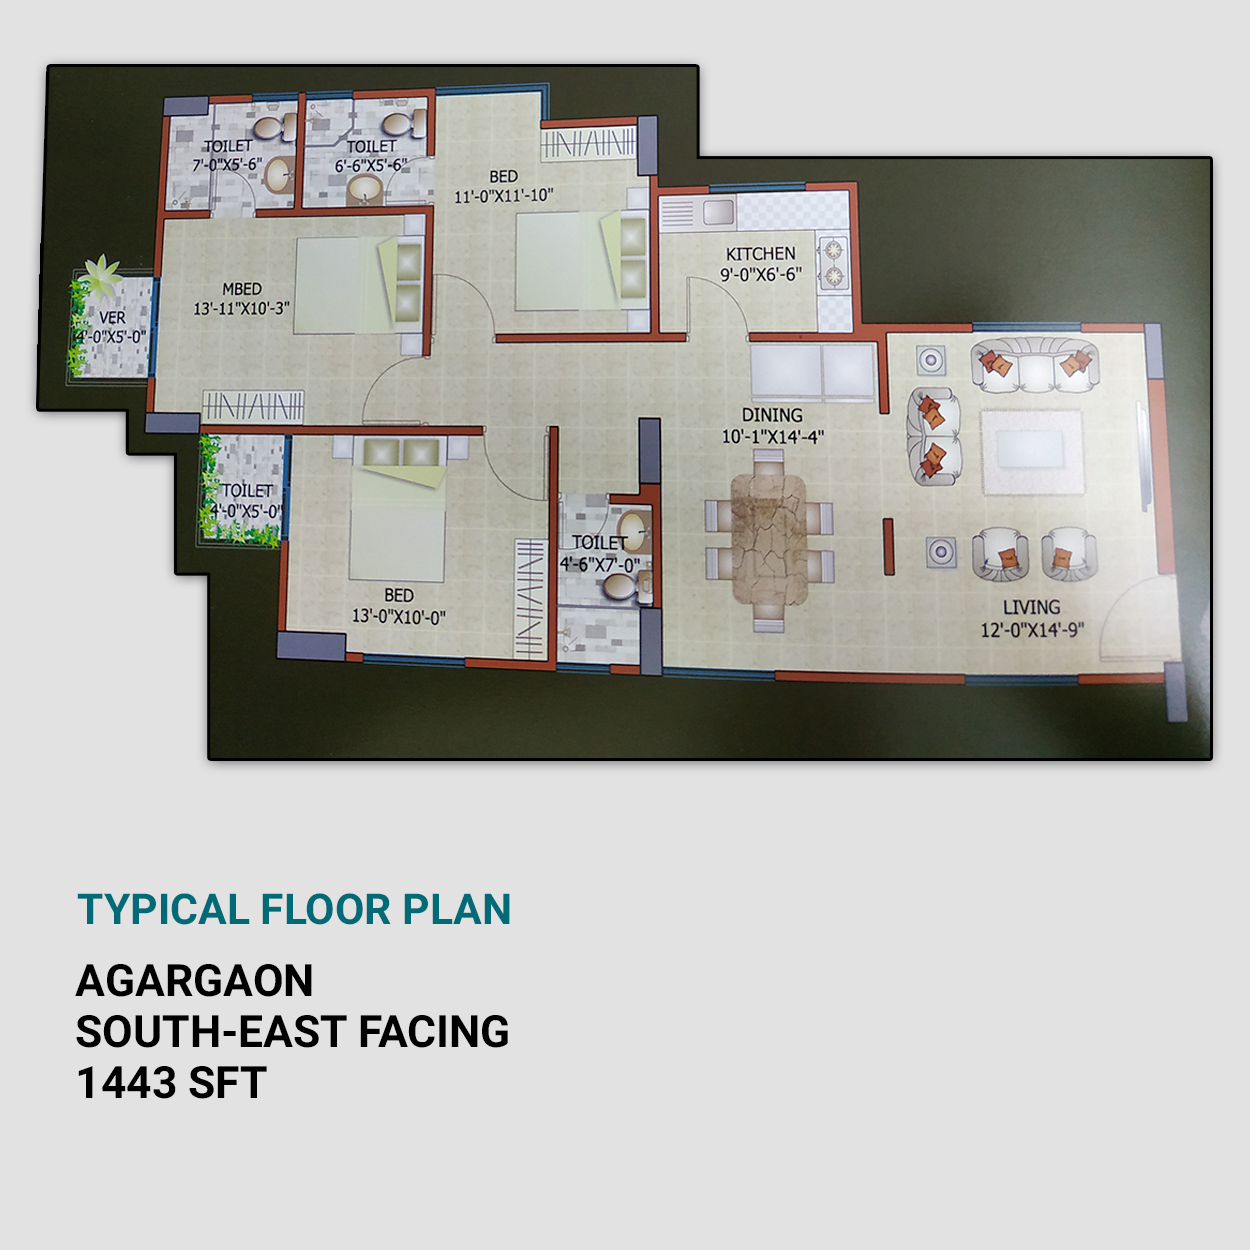 3 Bed Apartment for Sale in Nice Location   Exclusive 1443 sft Flat For Sale in Link Road, Agargaon